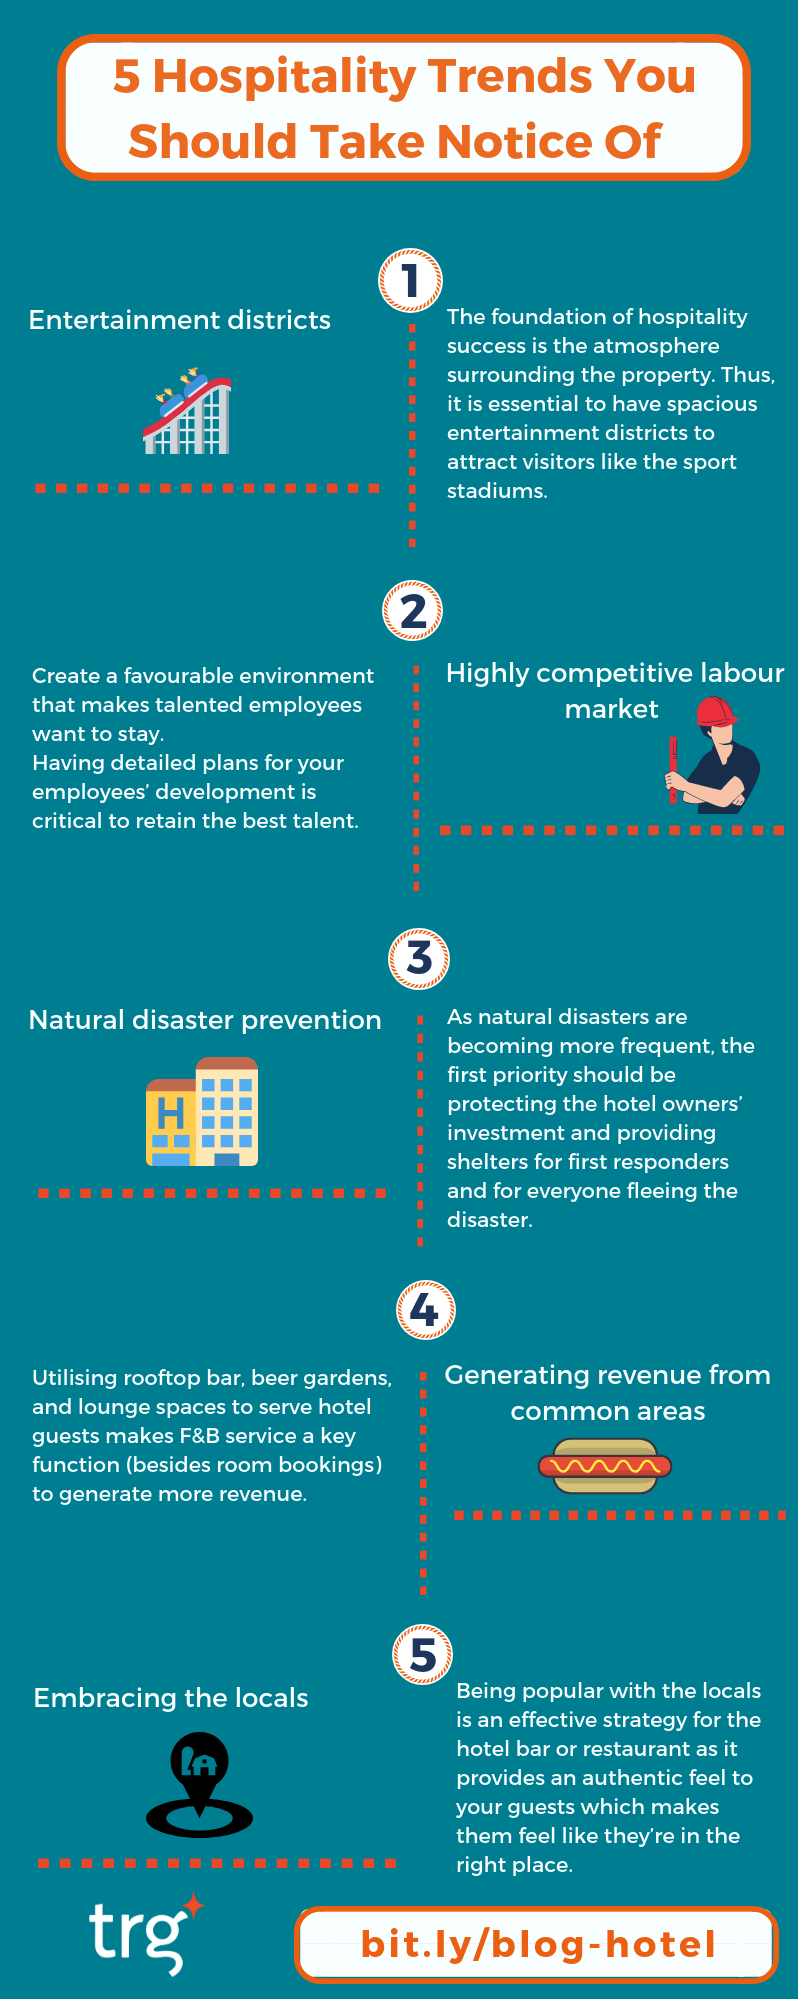 [Infographic] 5 Hospitality Trends To Pay Attention To in 2019